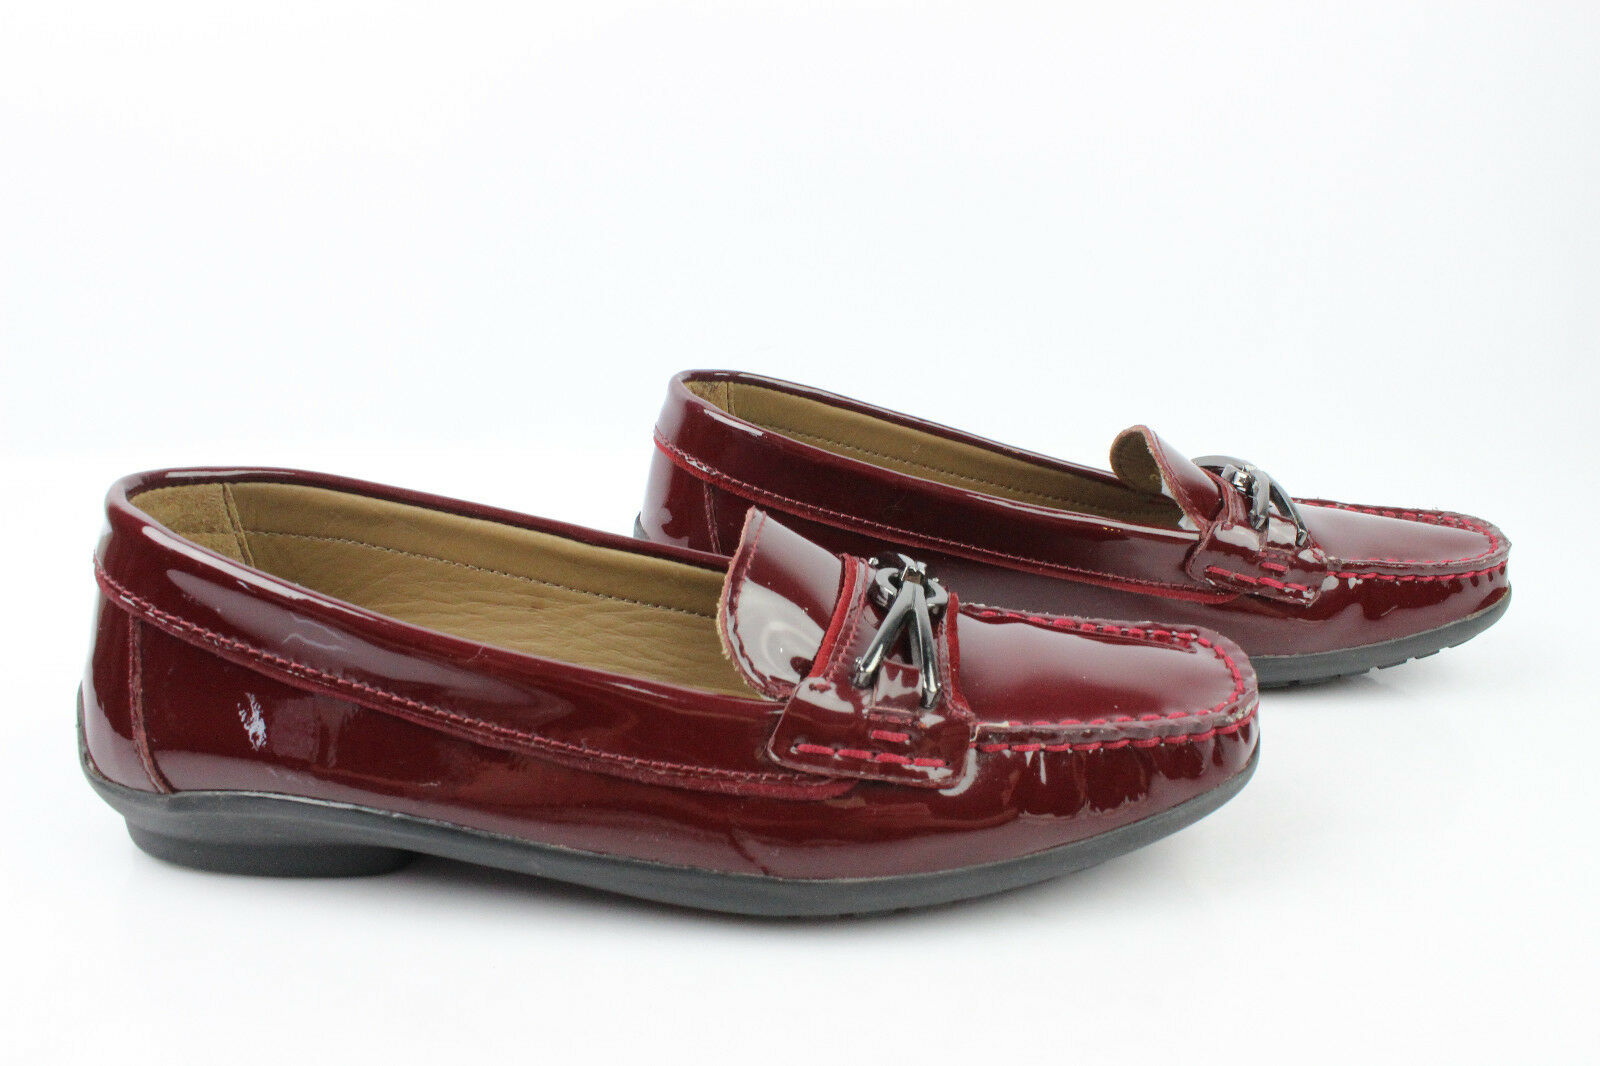 Mocassin GEOX Patent leather Bordeaux T 36 VERY GOOD CONDITION